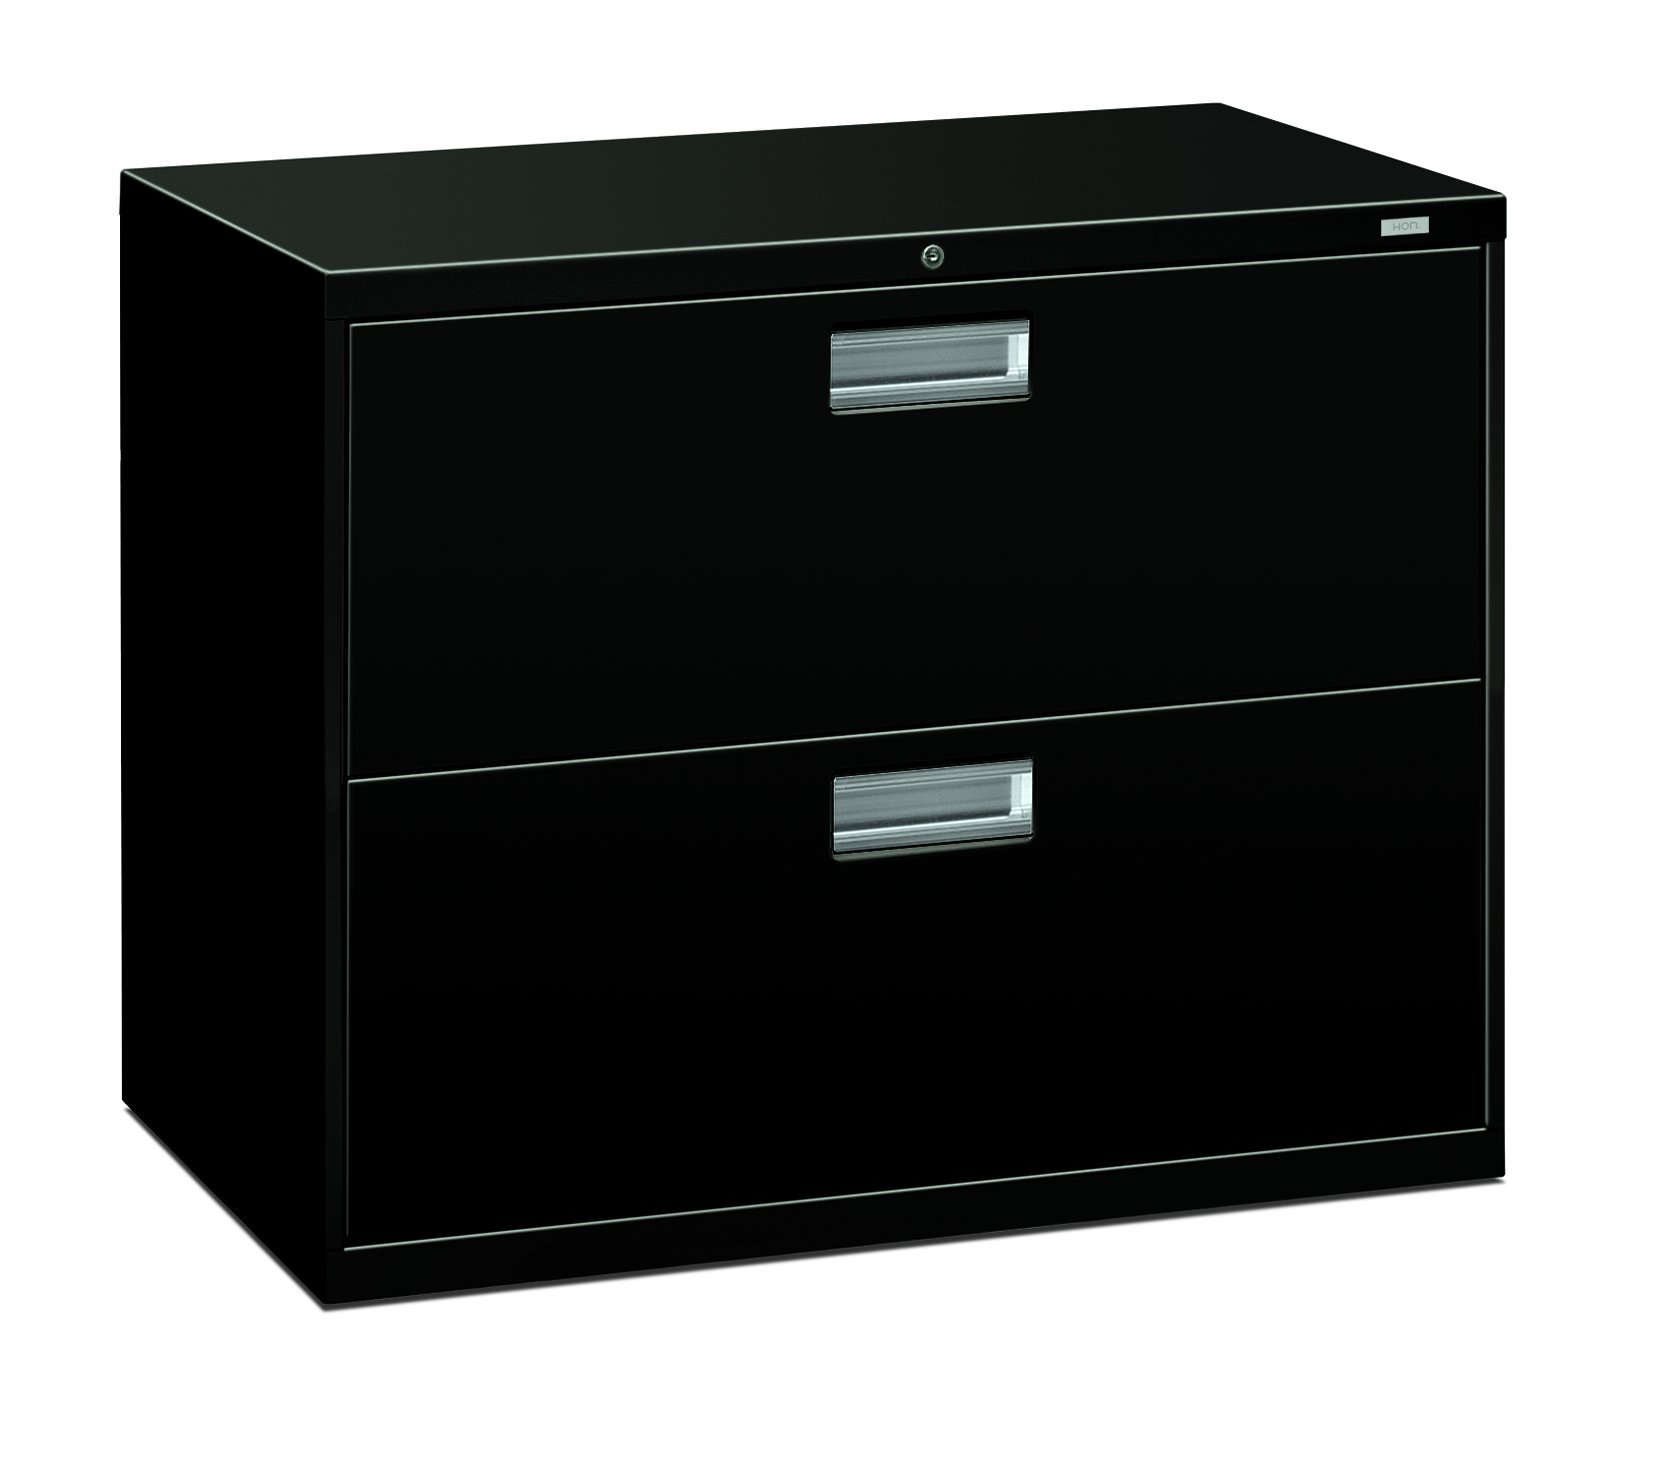 The HON Company H682.L.P HON682LP HON 2-Drawer Cabinet-600 Series Lateral Legal or Letter File Cabinet), 2-Drawer Black by HON